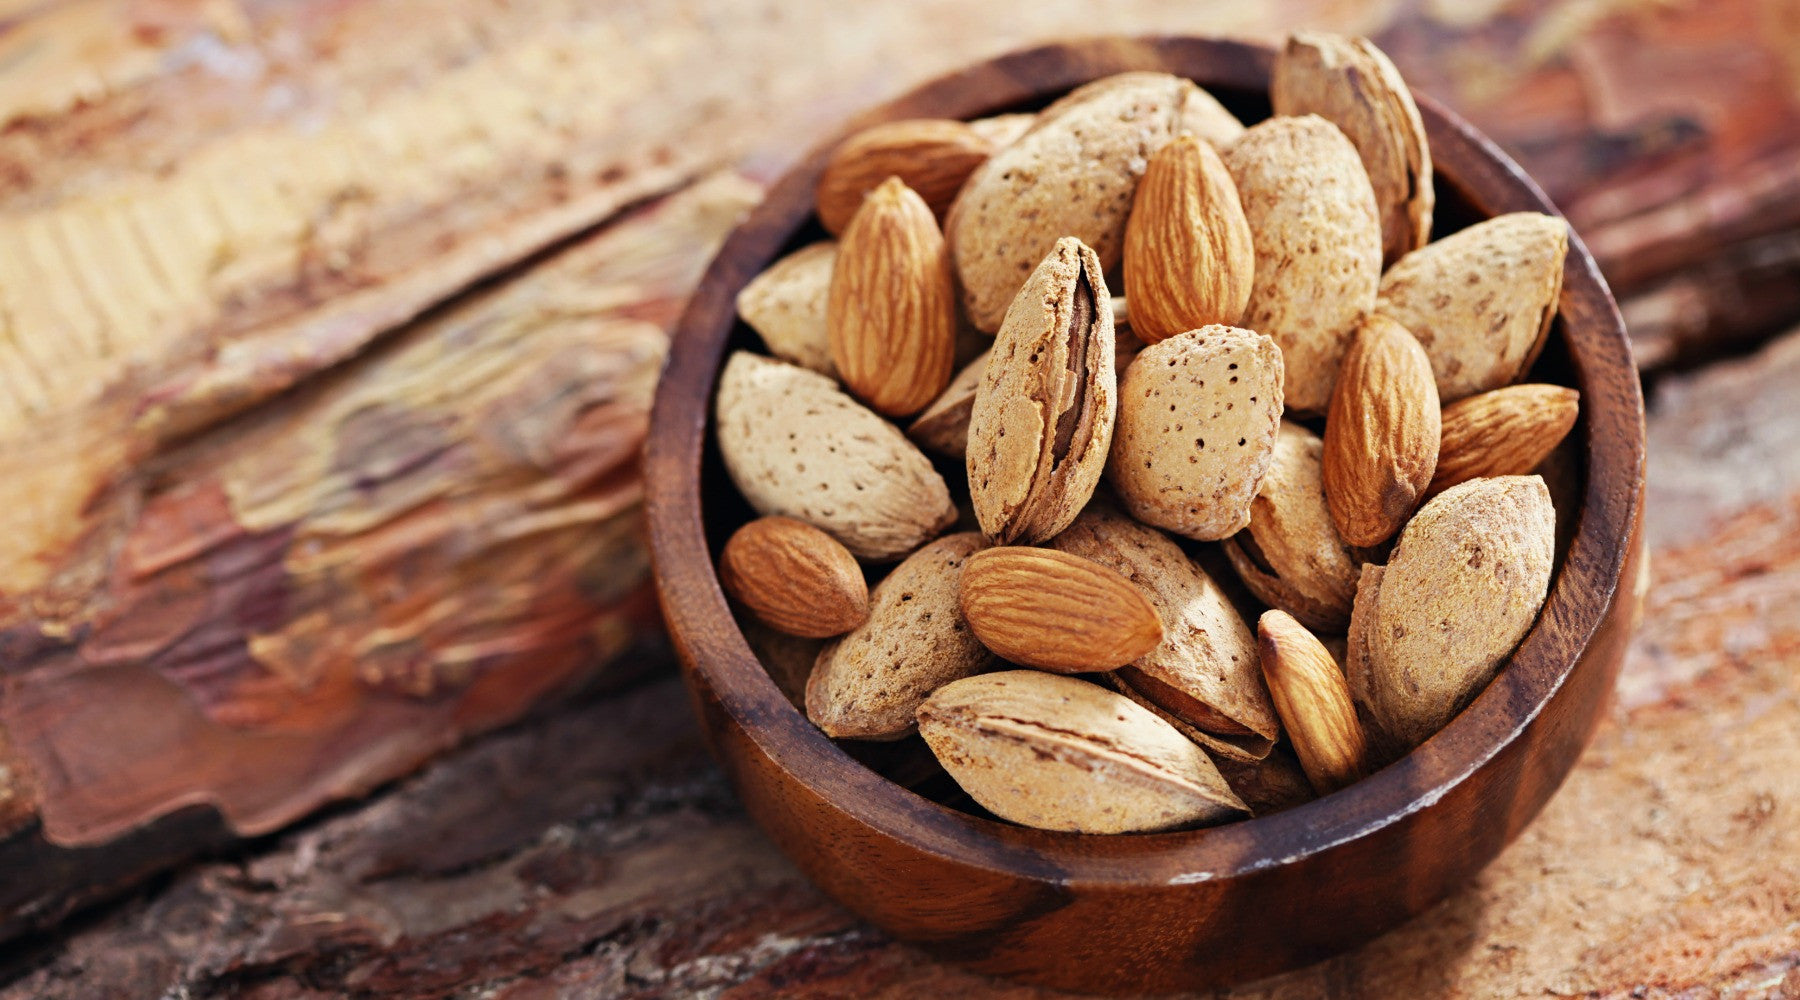 bowl of almonds on a rough board